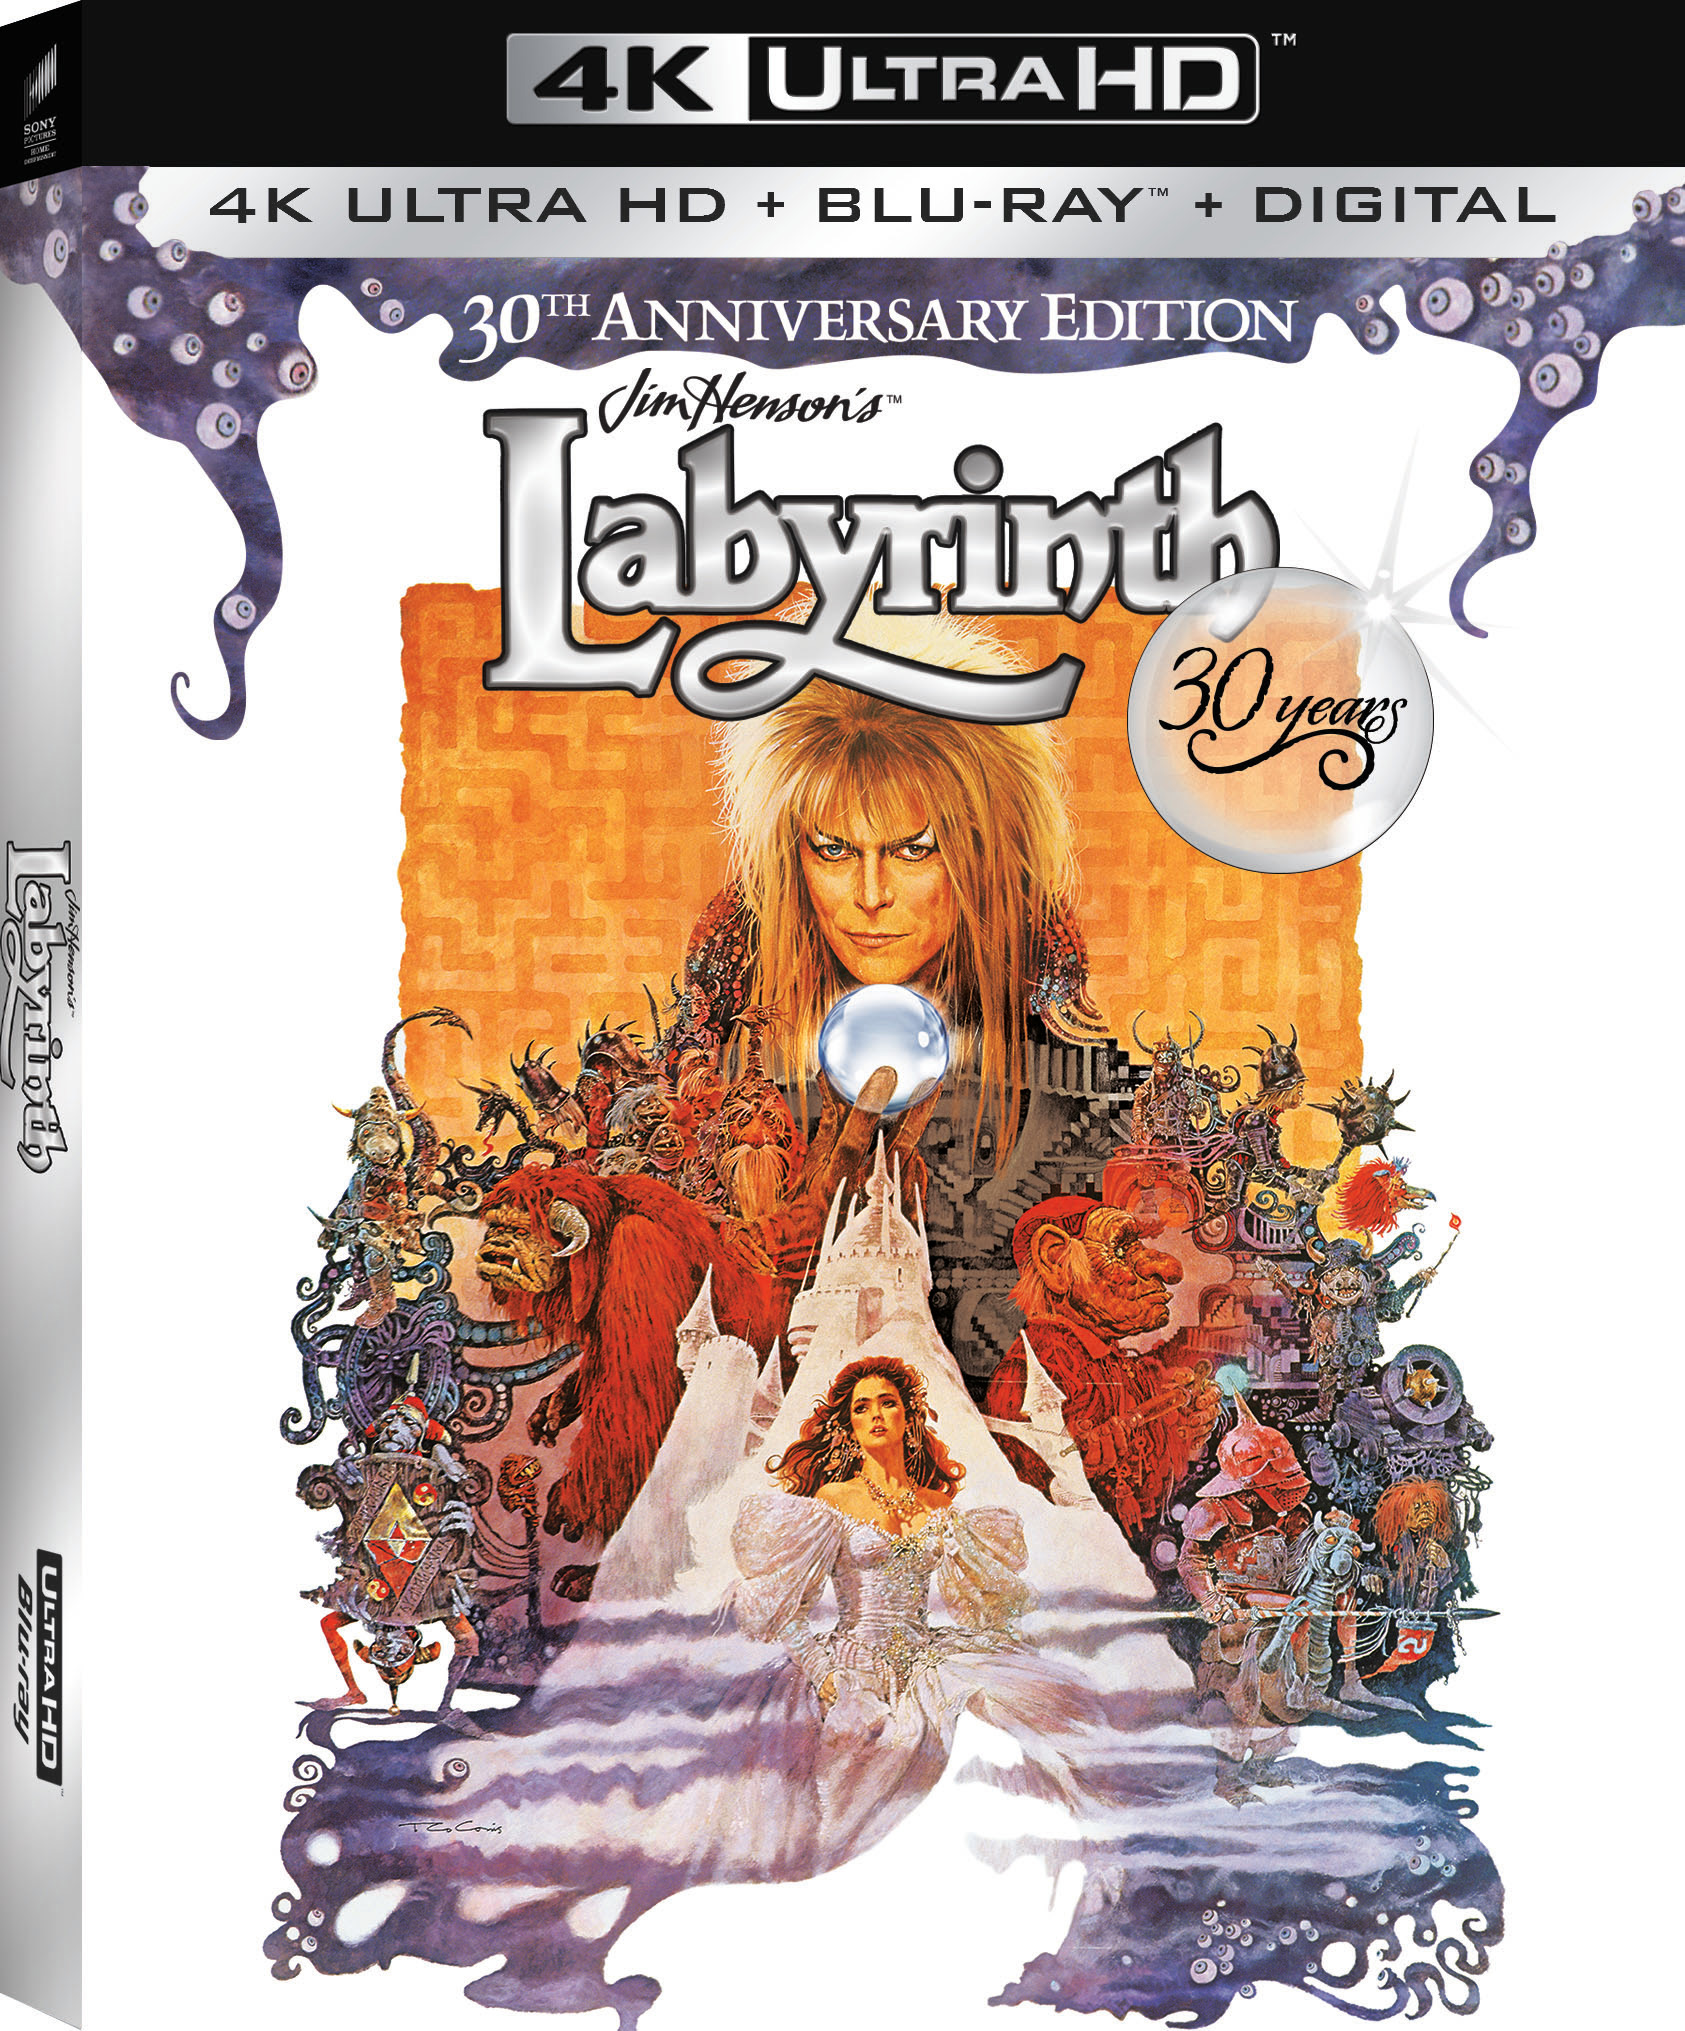 Labyrinth 30th Anniversary Starring David Bowie Gets 4K